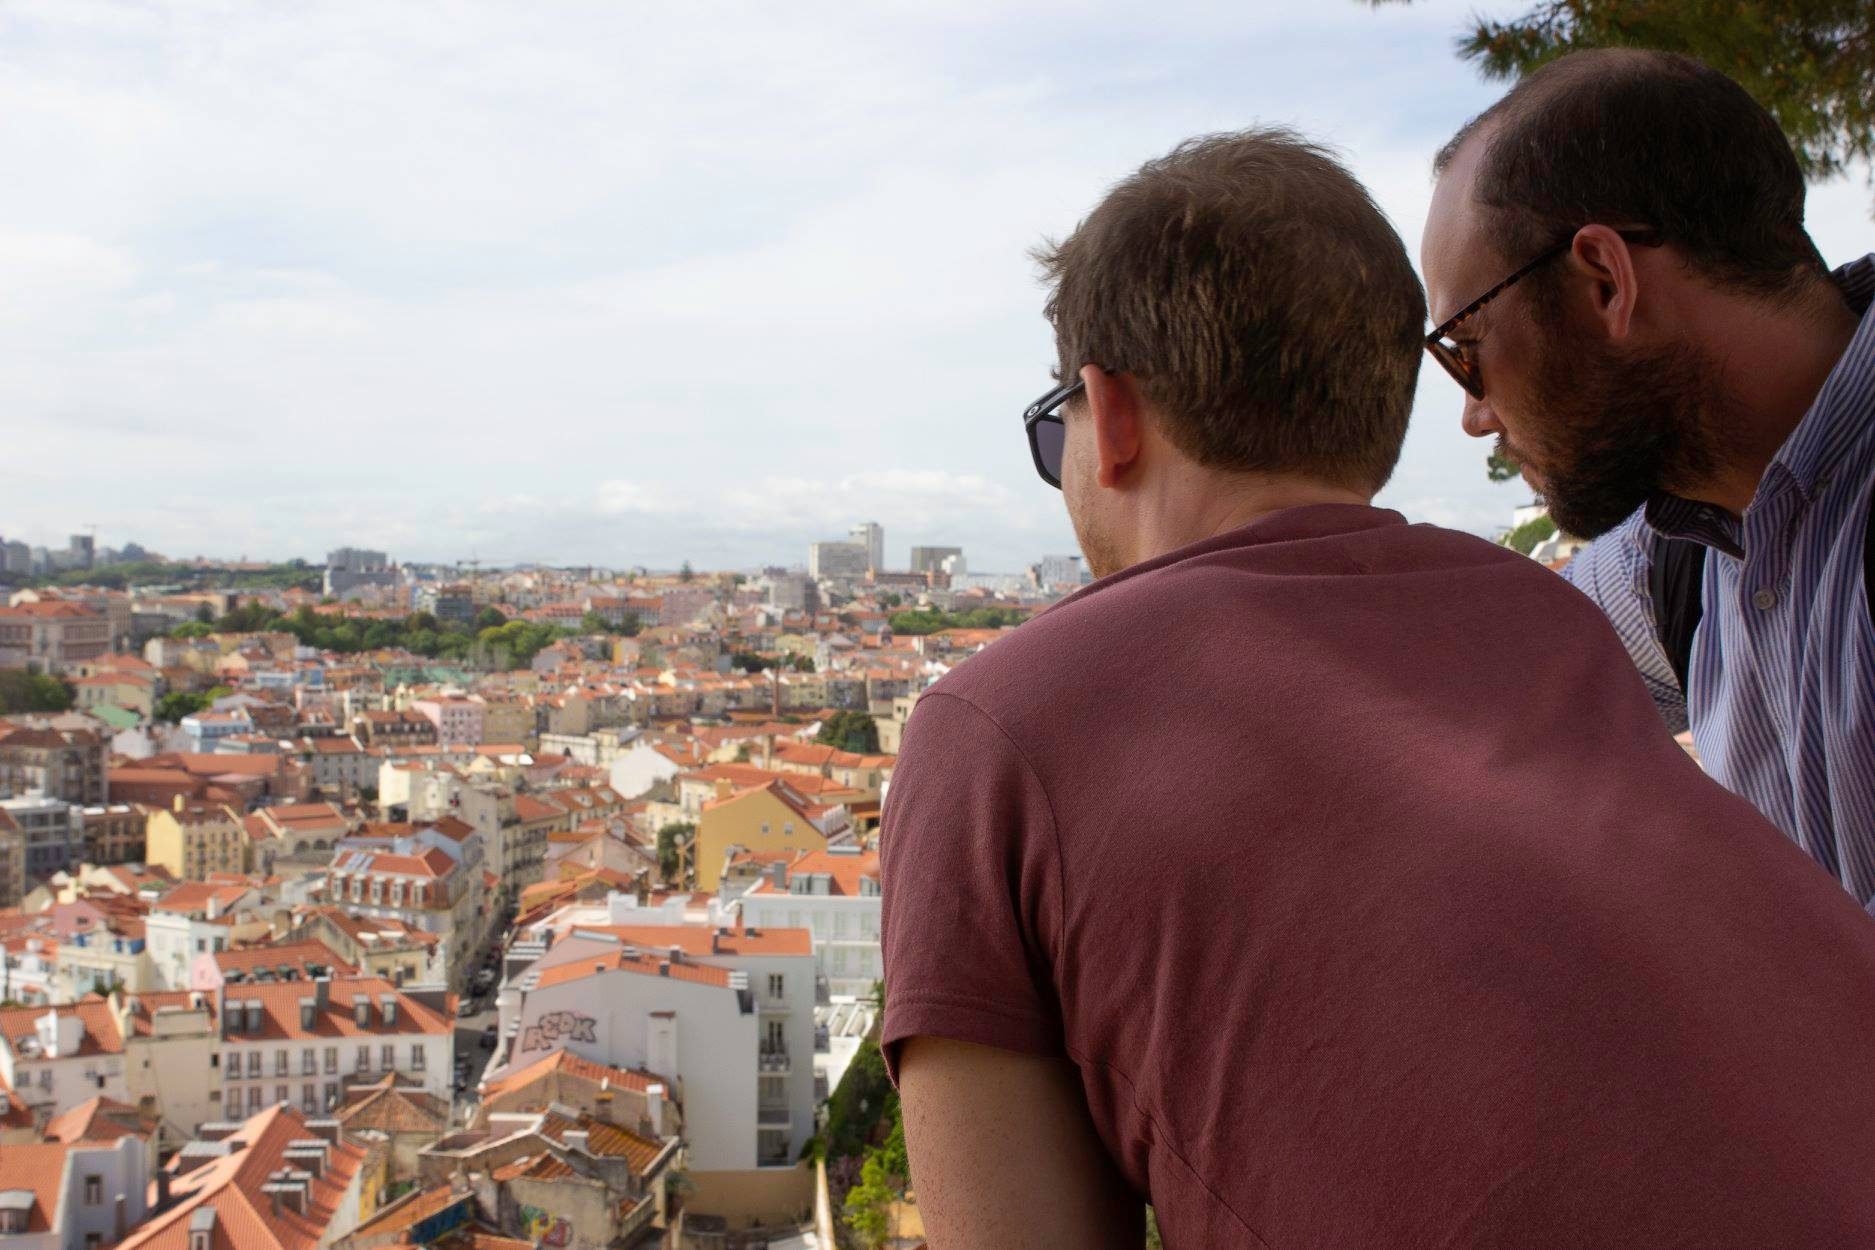 Gavin (far right) looking out over Lisbon.